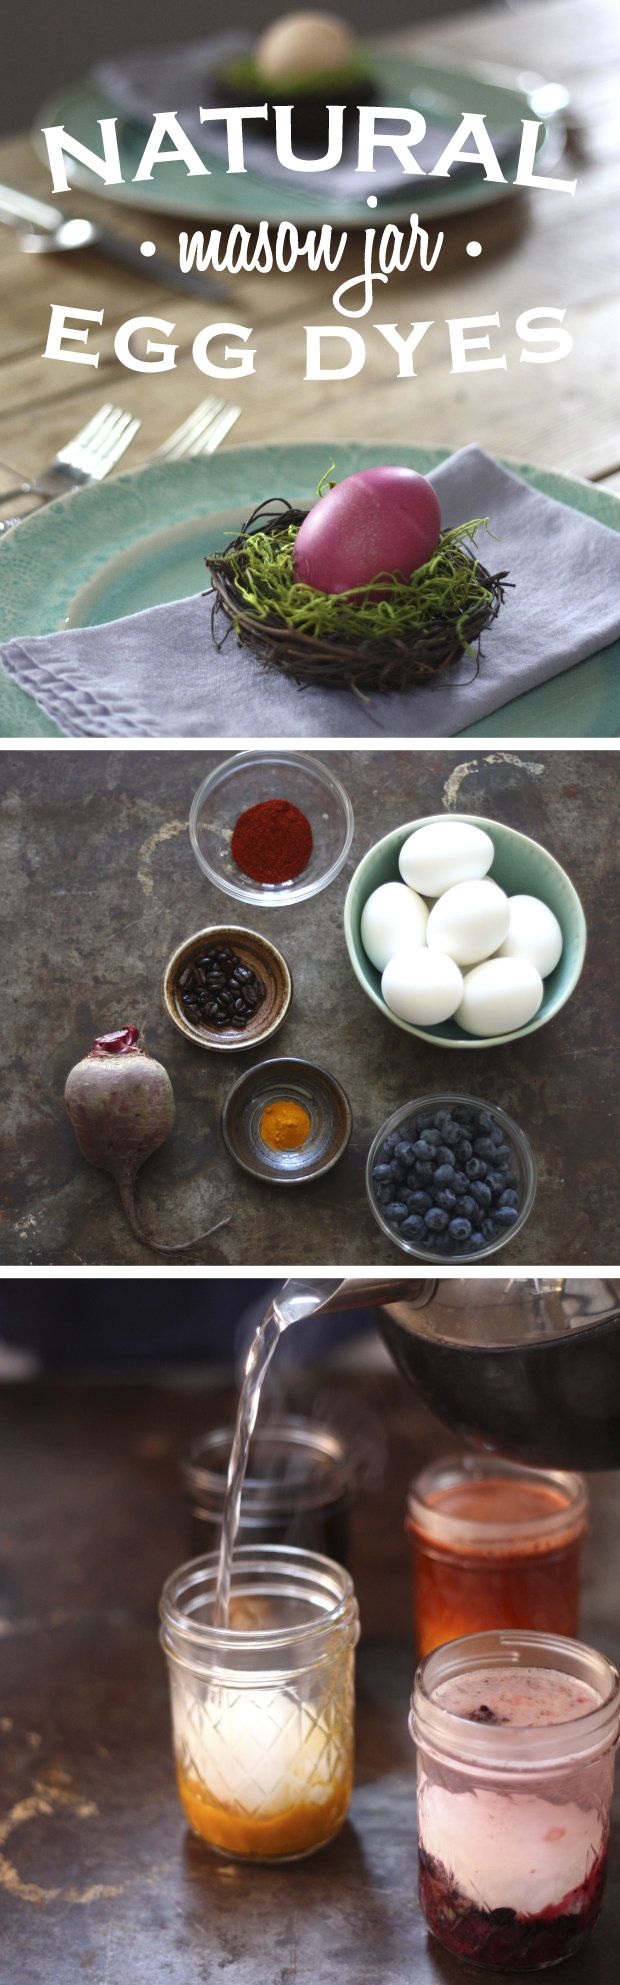 All You Will Need Is Hard Boiled Eggs, Natural Ingredients For The Dye  (vegetables